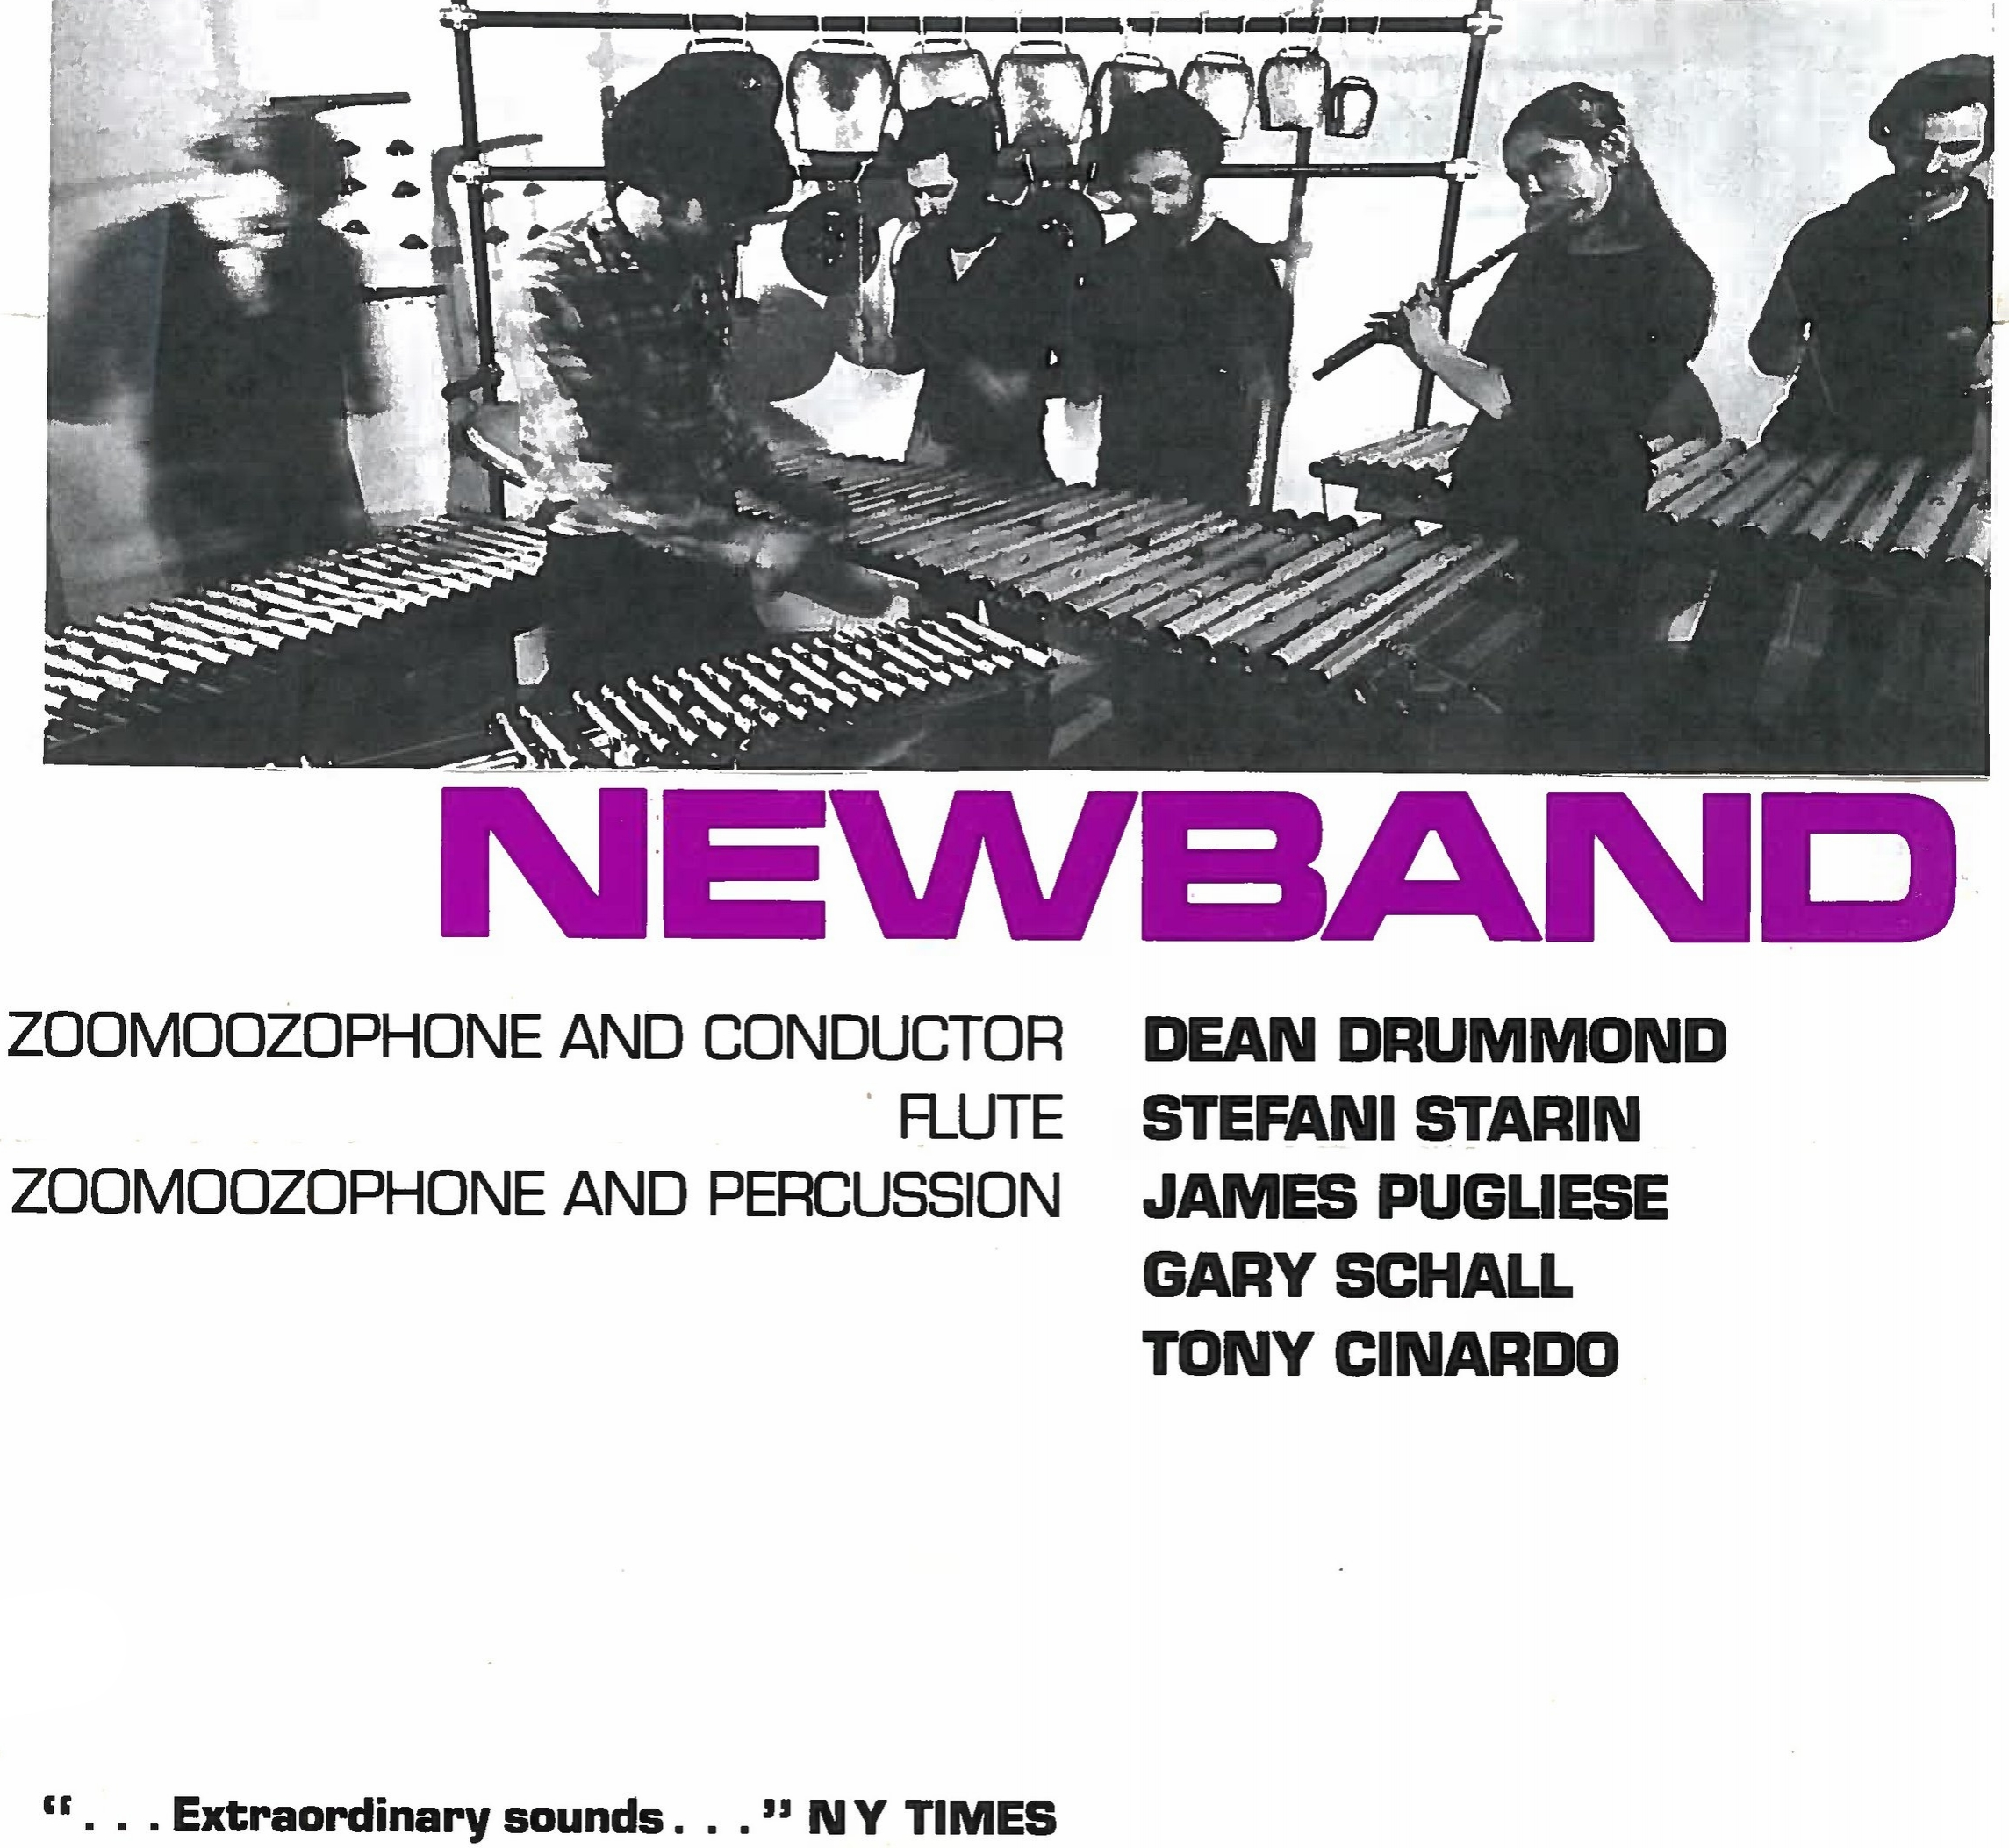 Schall was a pioneer of microtonal music on the Zoomoozophone, a metallic instrumentwith 31 tones per octave created by Dean Drummond. Schall performed Drummond's music as well as the music of Harry Partch. Schall's composition, Xonix became a regular part of the Newband repertoire. -